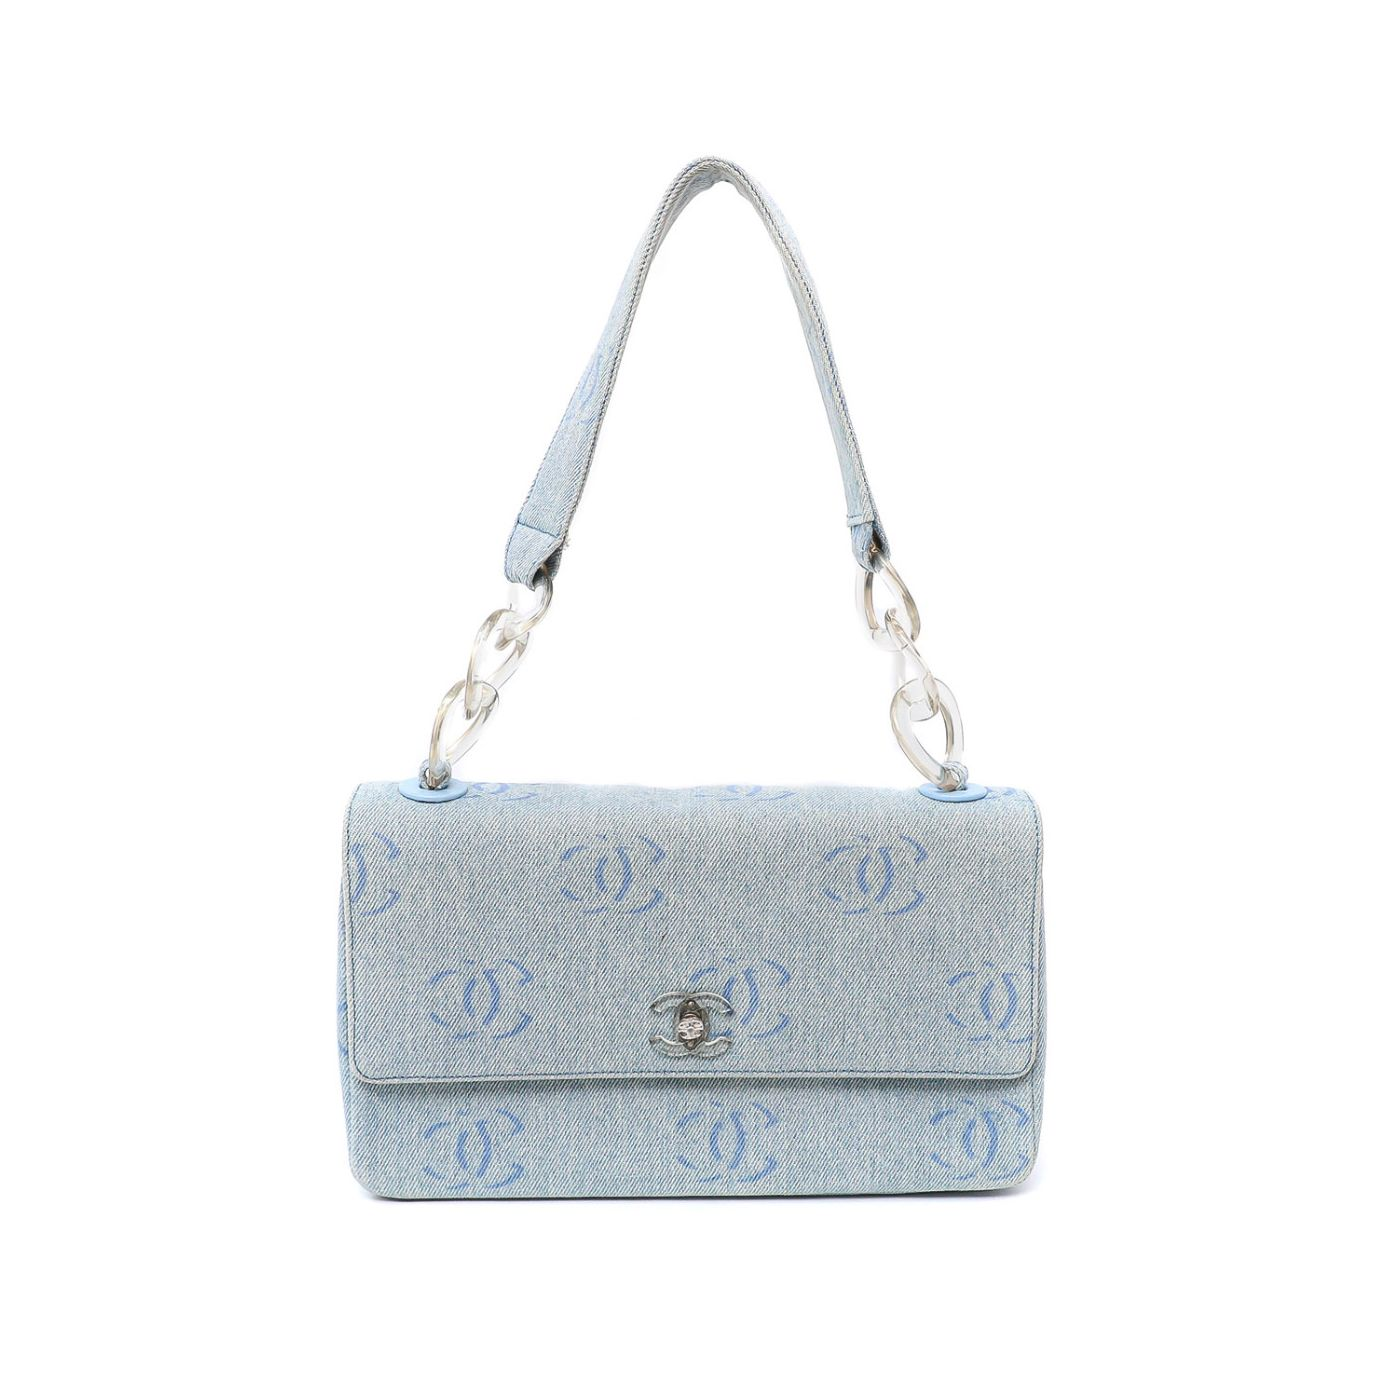 Chanel Blue CC Classic Flap Lucite Link Bag